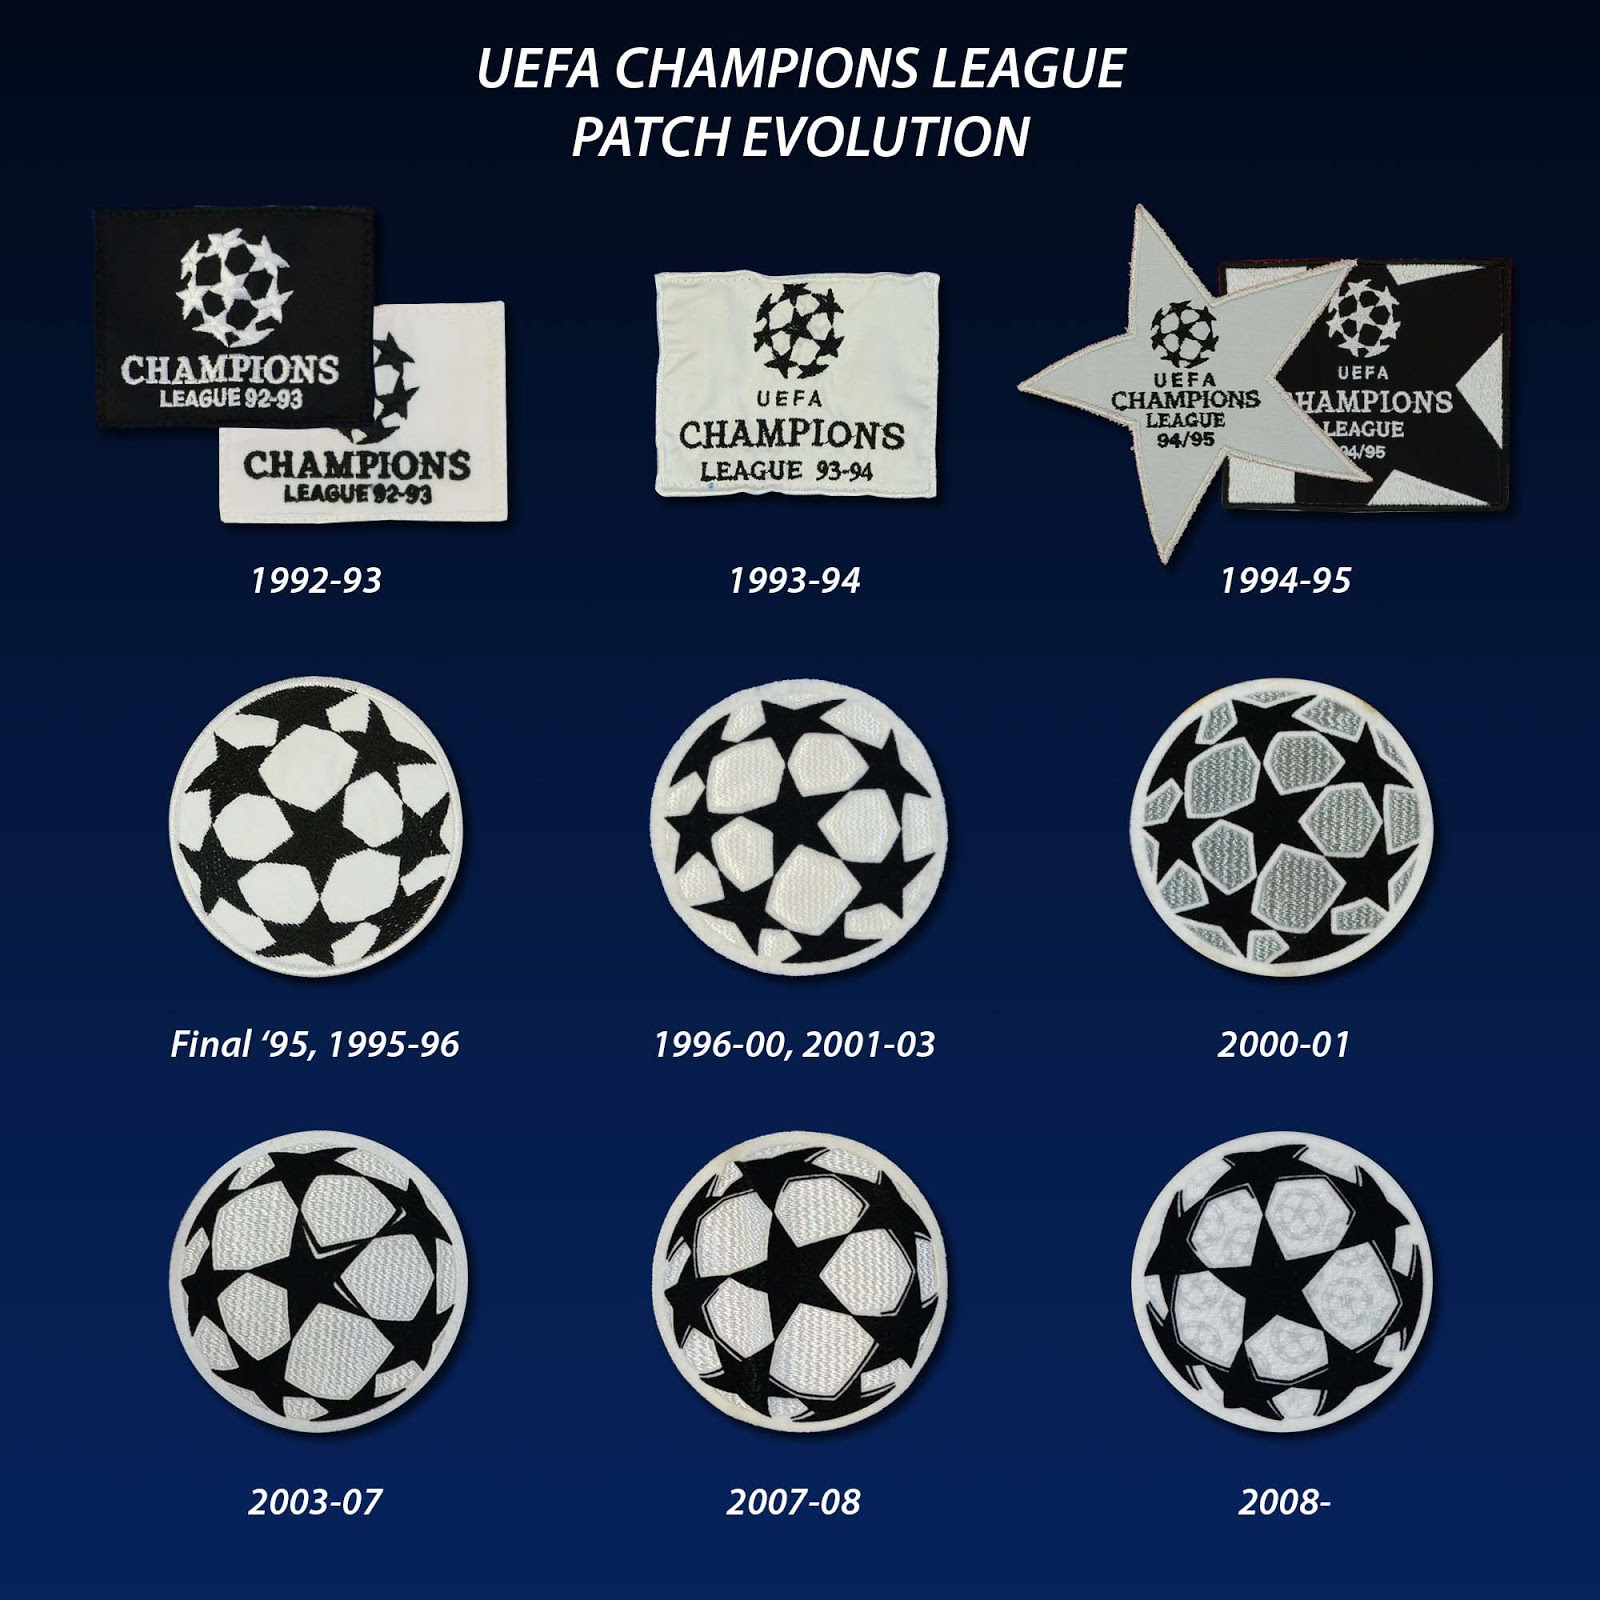 Evolution Of The UEFA Champions League Patch Footy Headlines